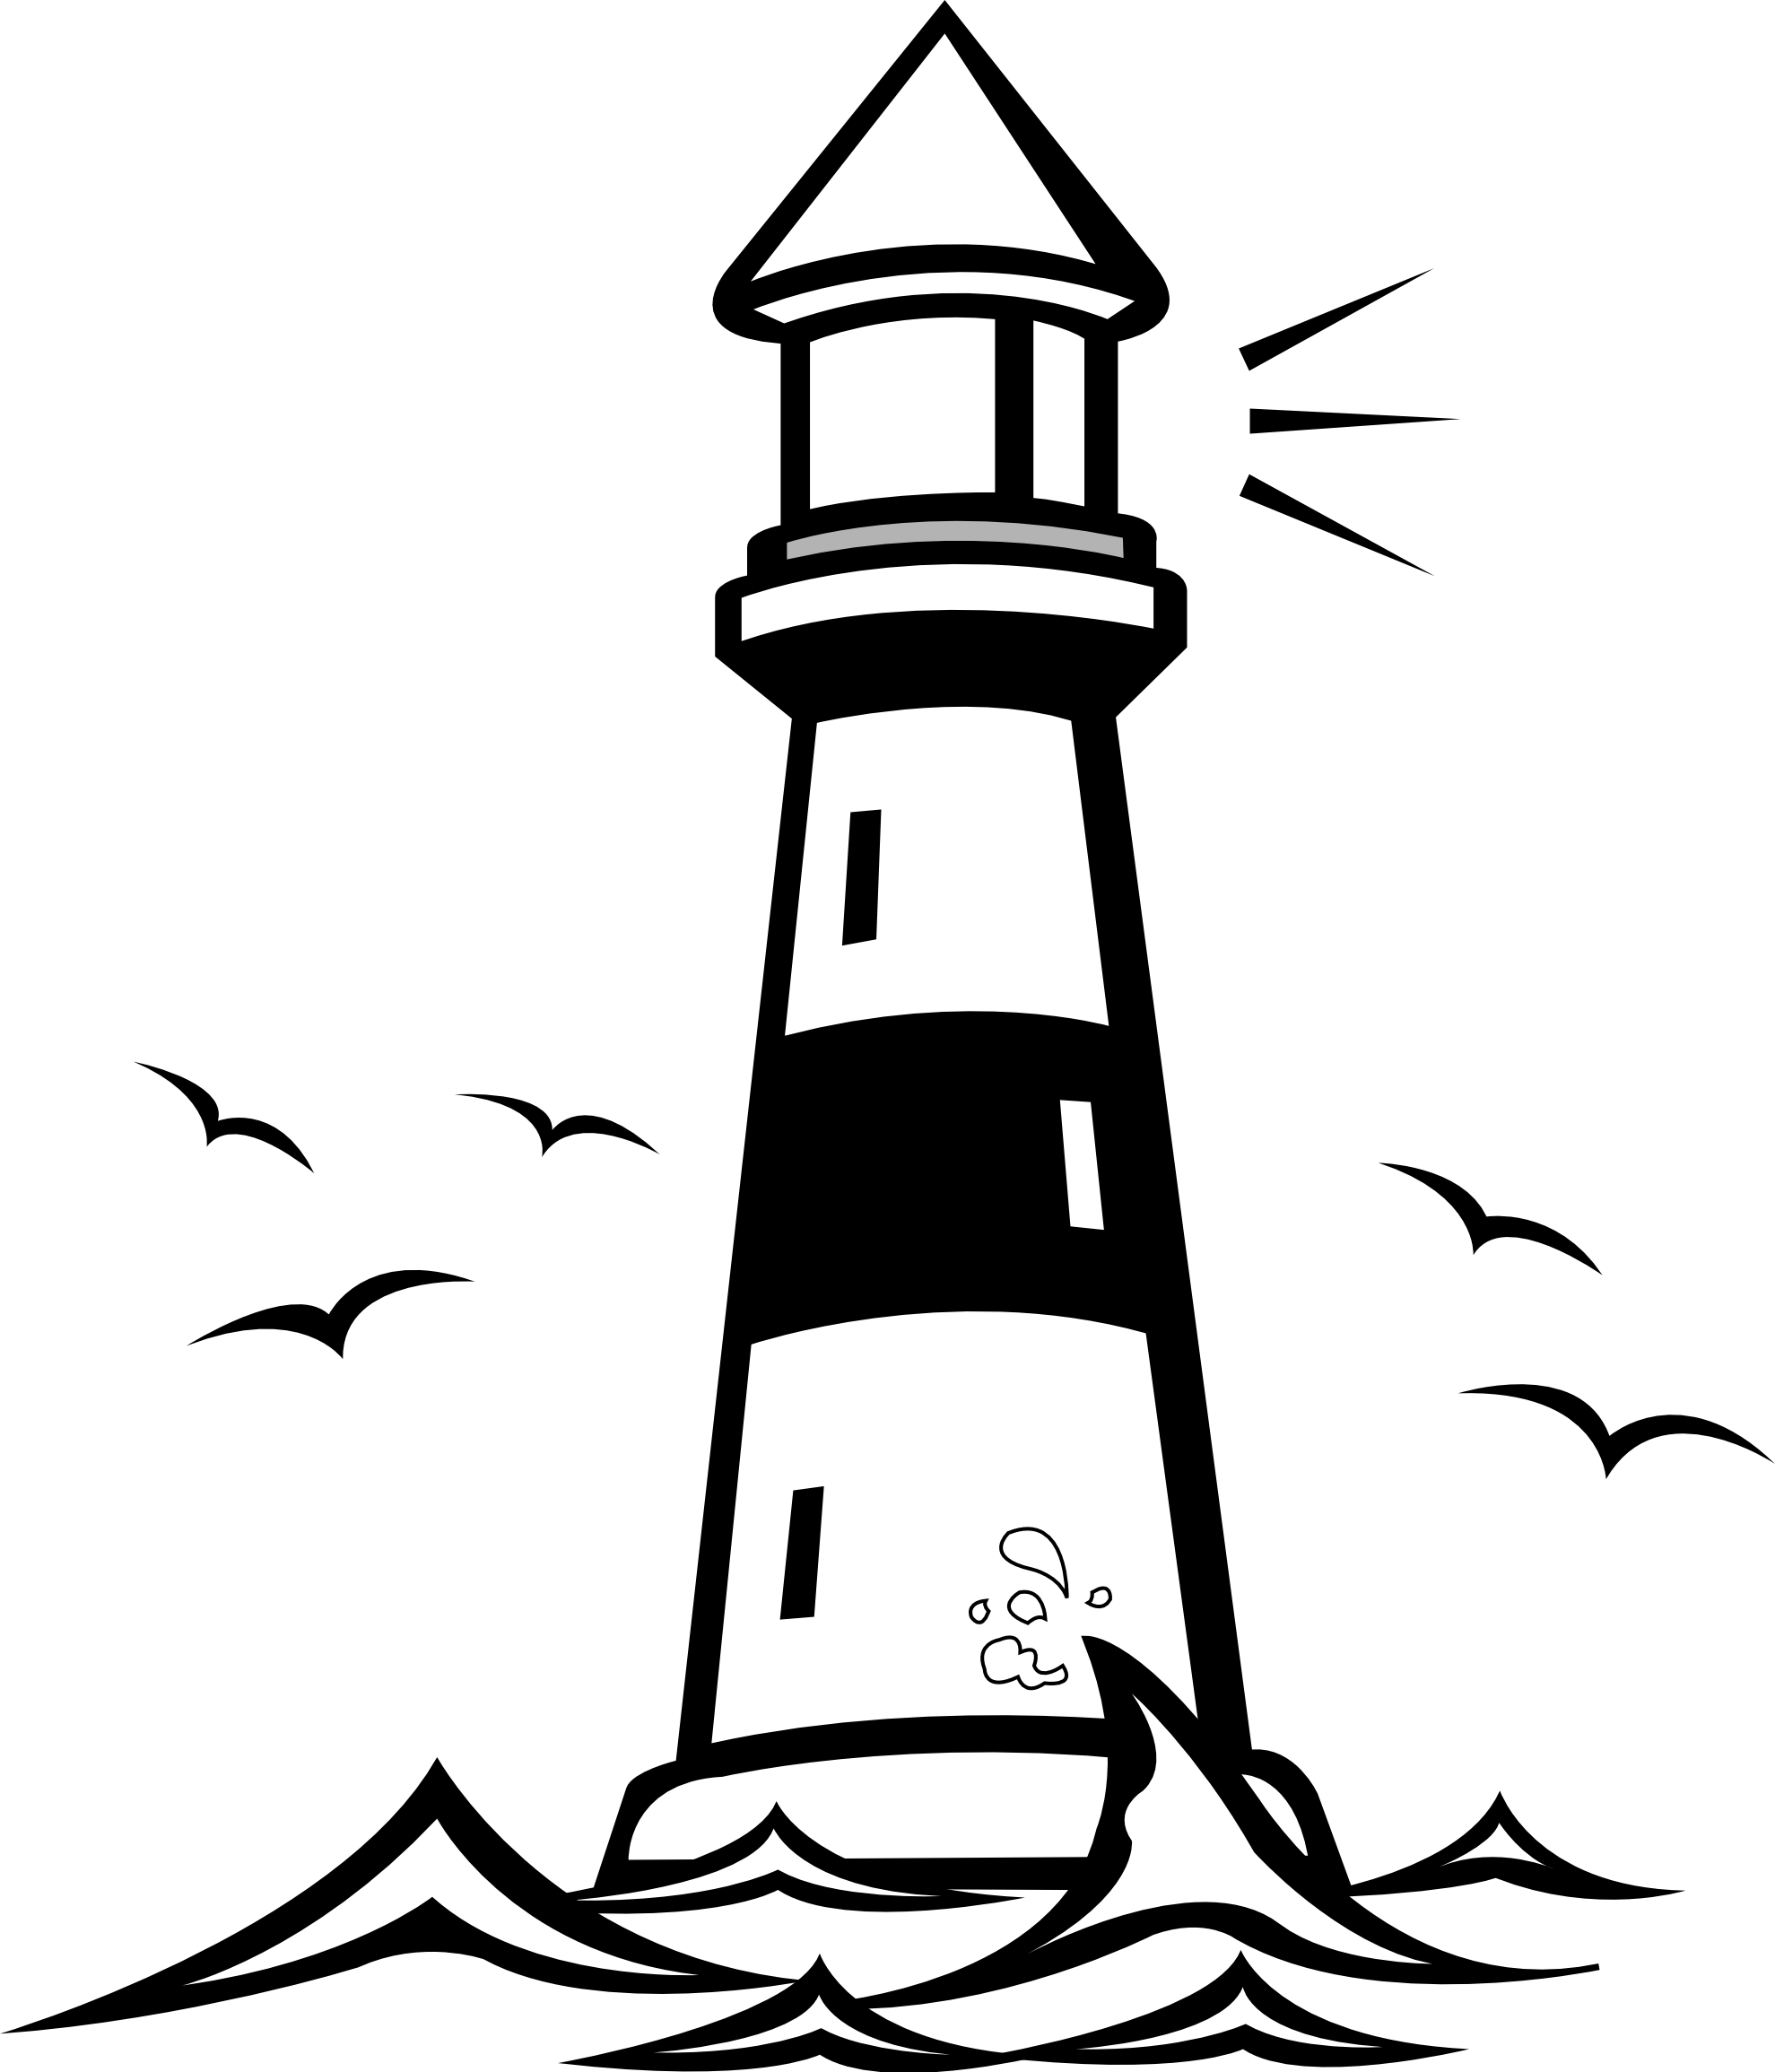 Lighthouse logo clipart clip art freeuse Free Lighthouse Cliparts, Download Free Clip Art, Free Clip Art on ... clip art freeuse